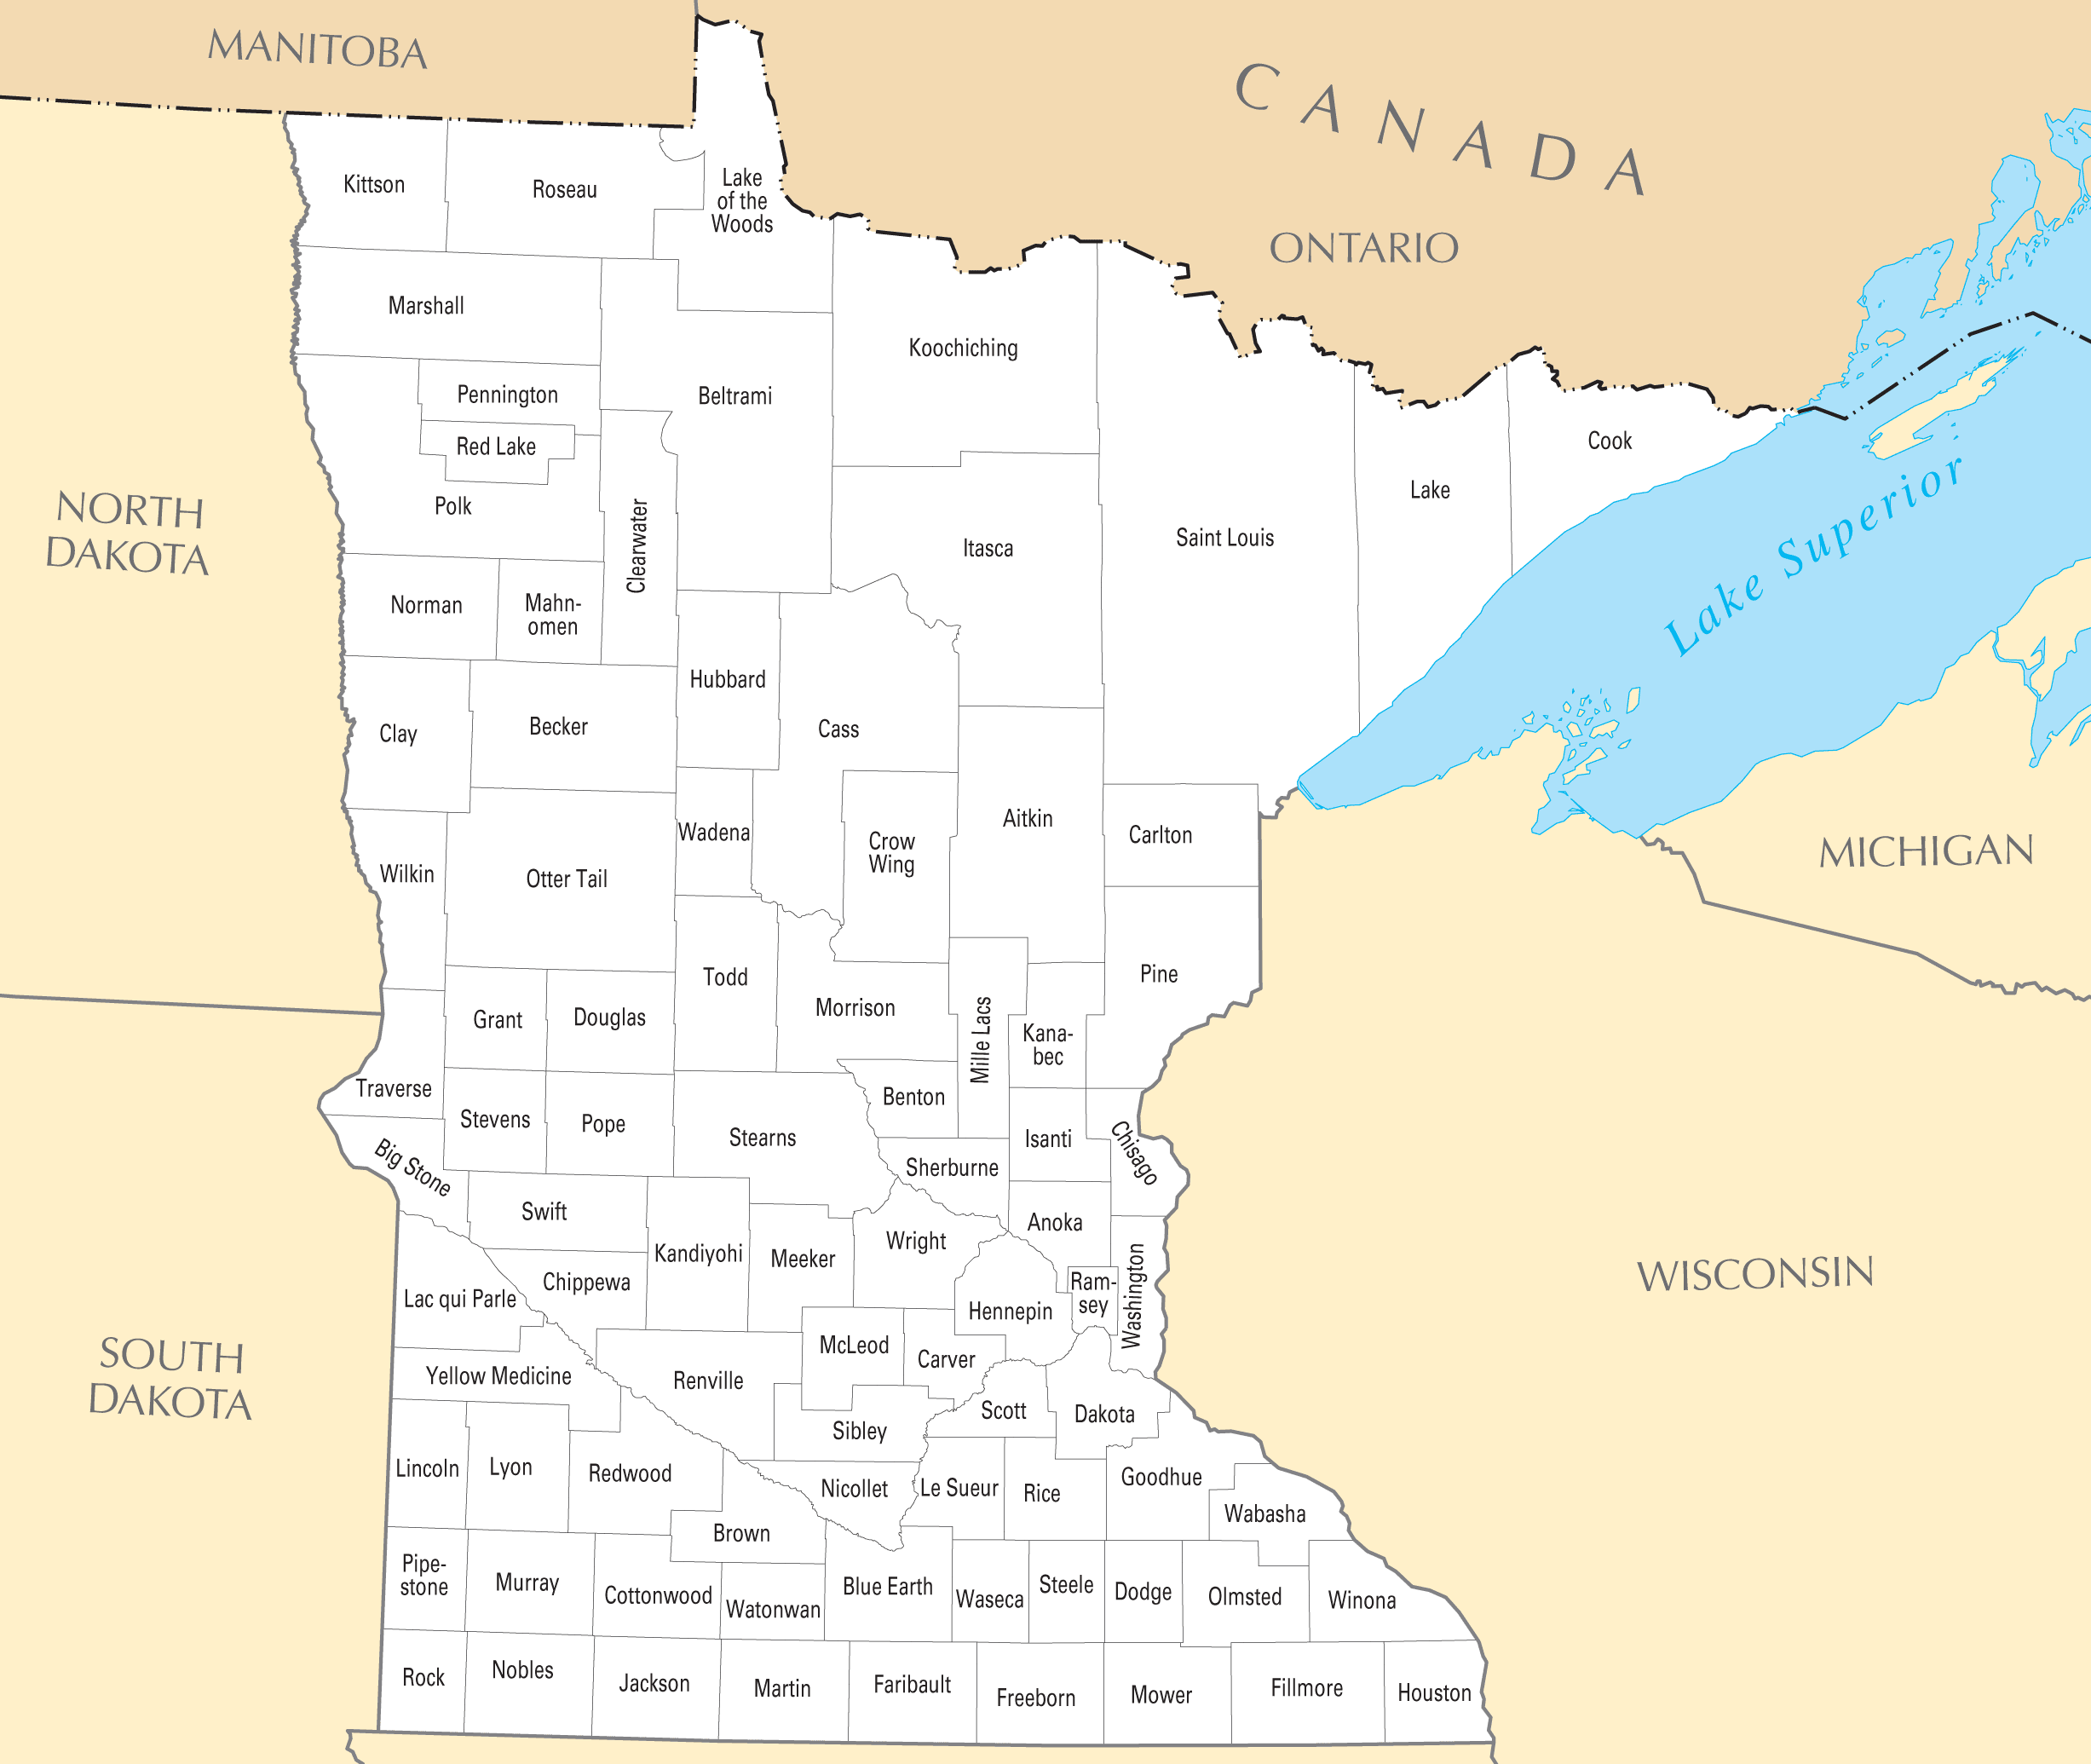 Minnesota Map Png.Minnesota County Map Mapsof Net